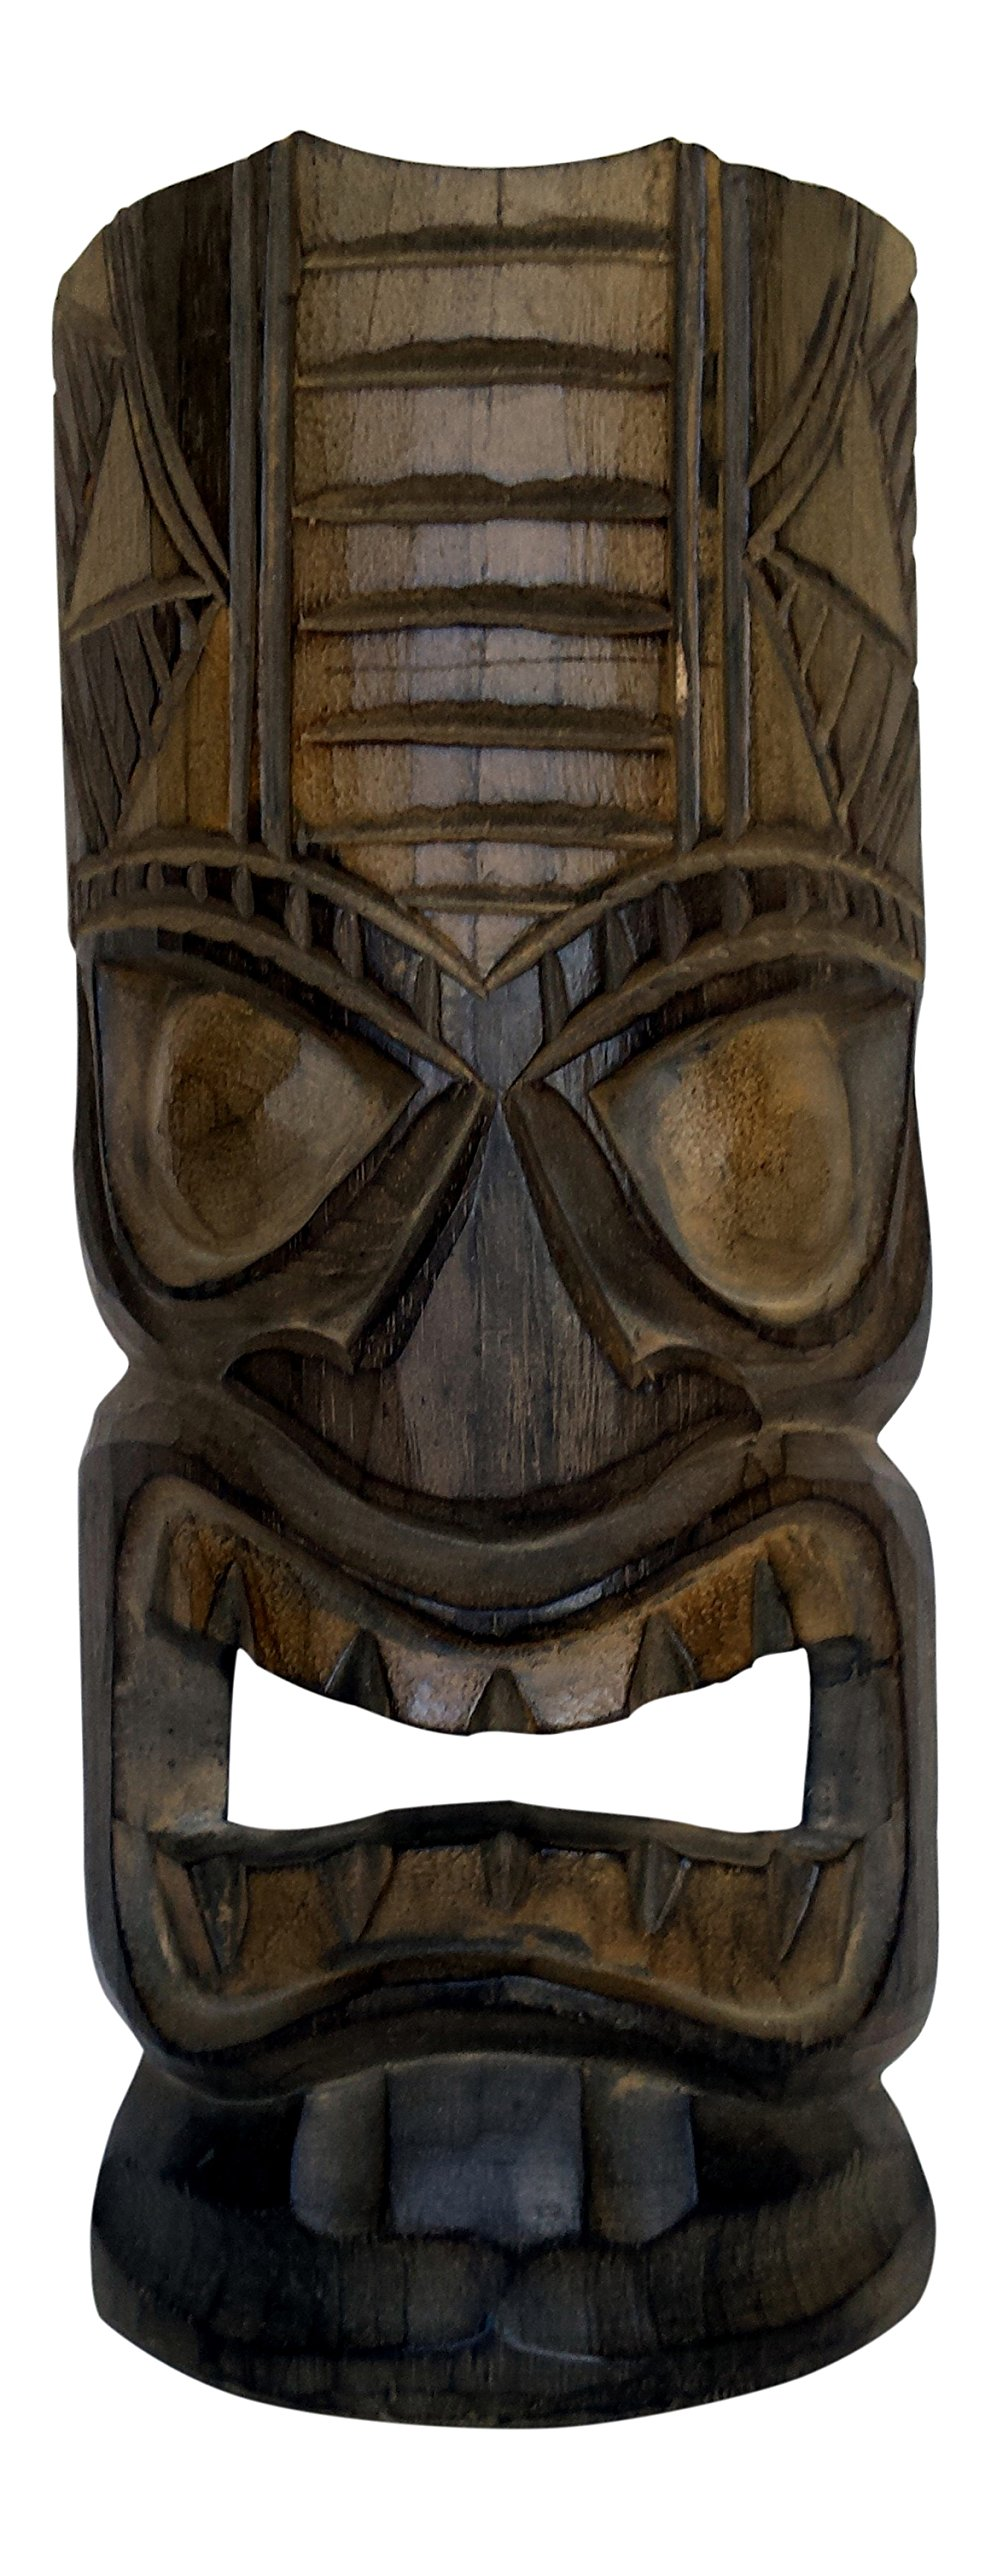 Seaside Accents Tiki Mask Wall Decor, 12 Inches by Seaside Accents